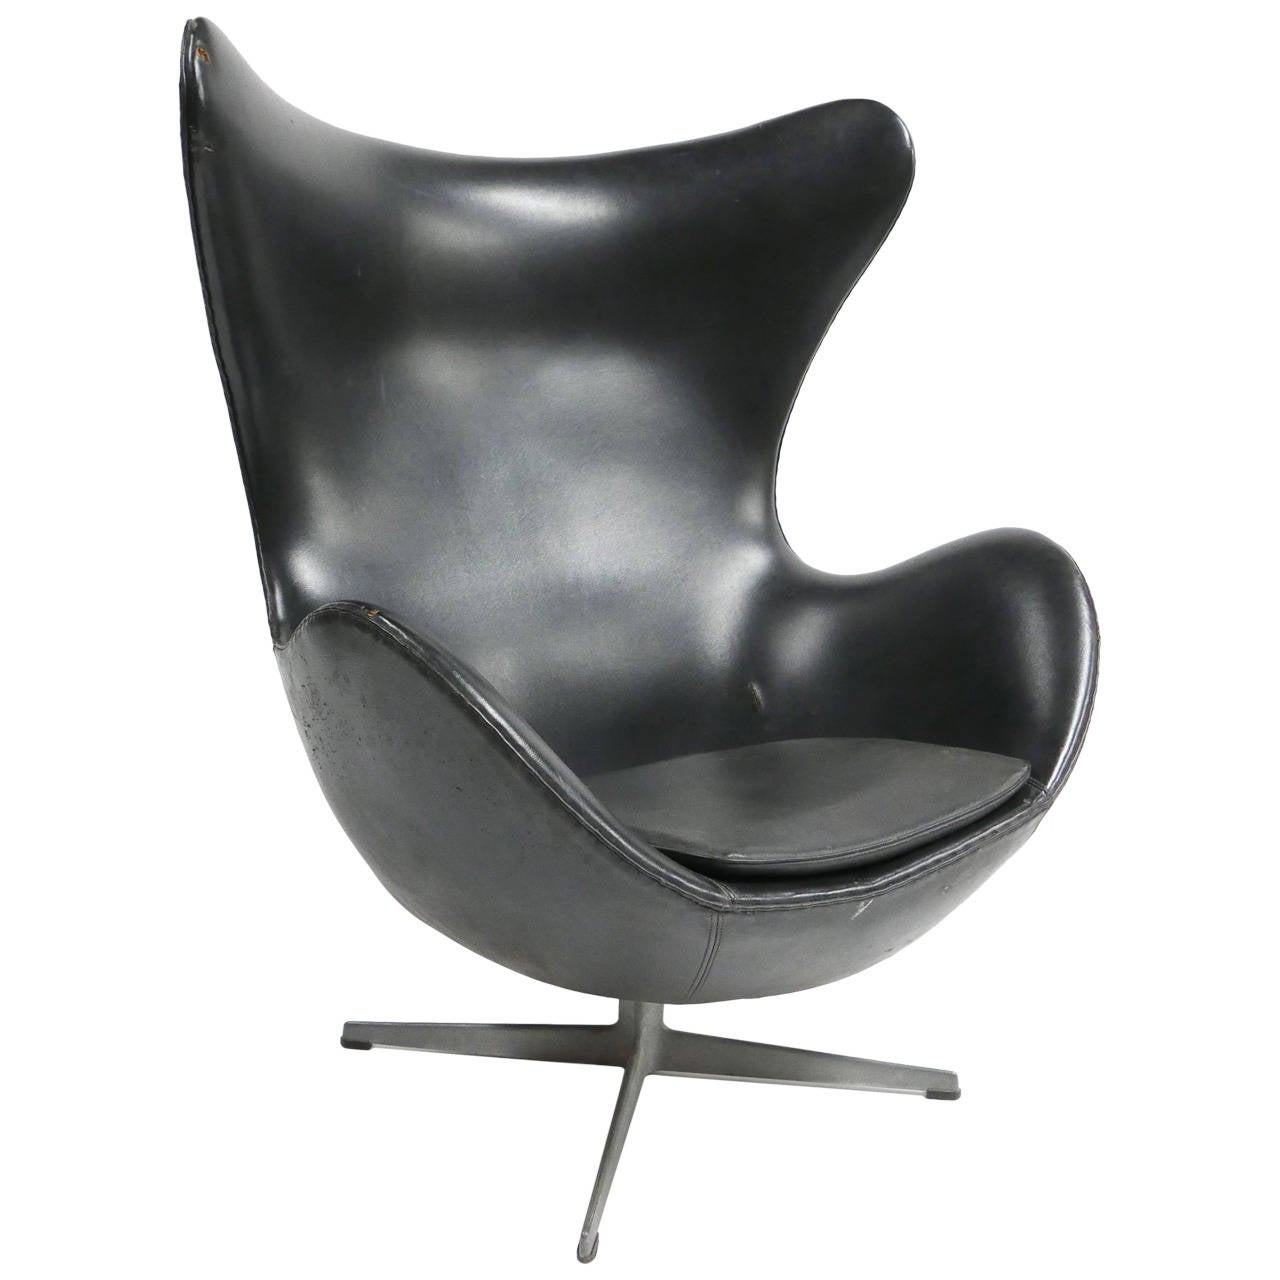 arne jacobsen egg chair by fritz hansen at 1stdibs. Black Bedroom Furniture Sets. Home Design Ideas